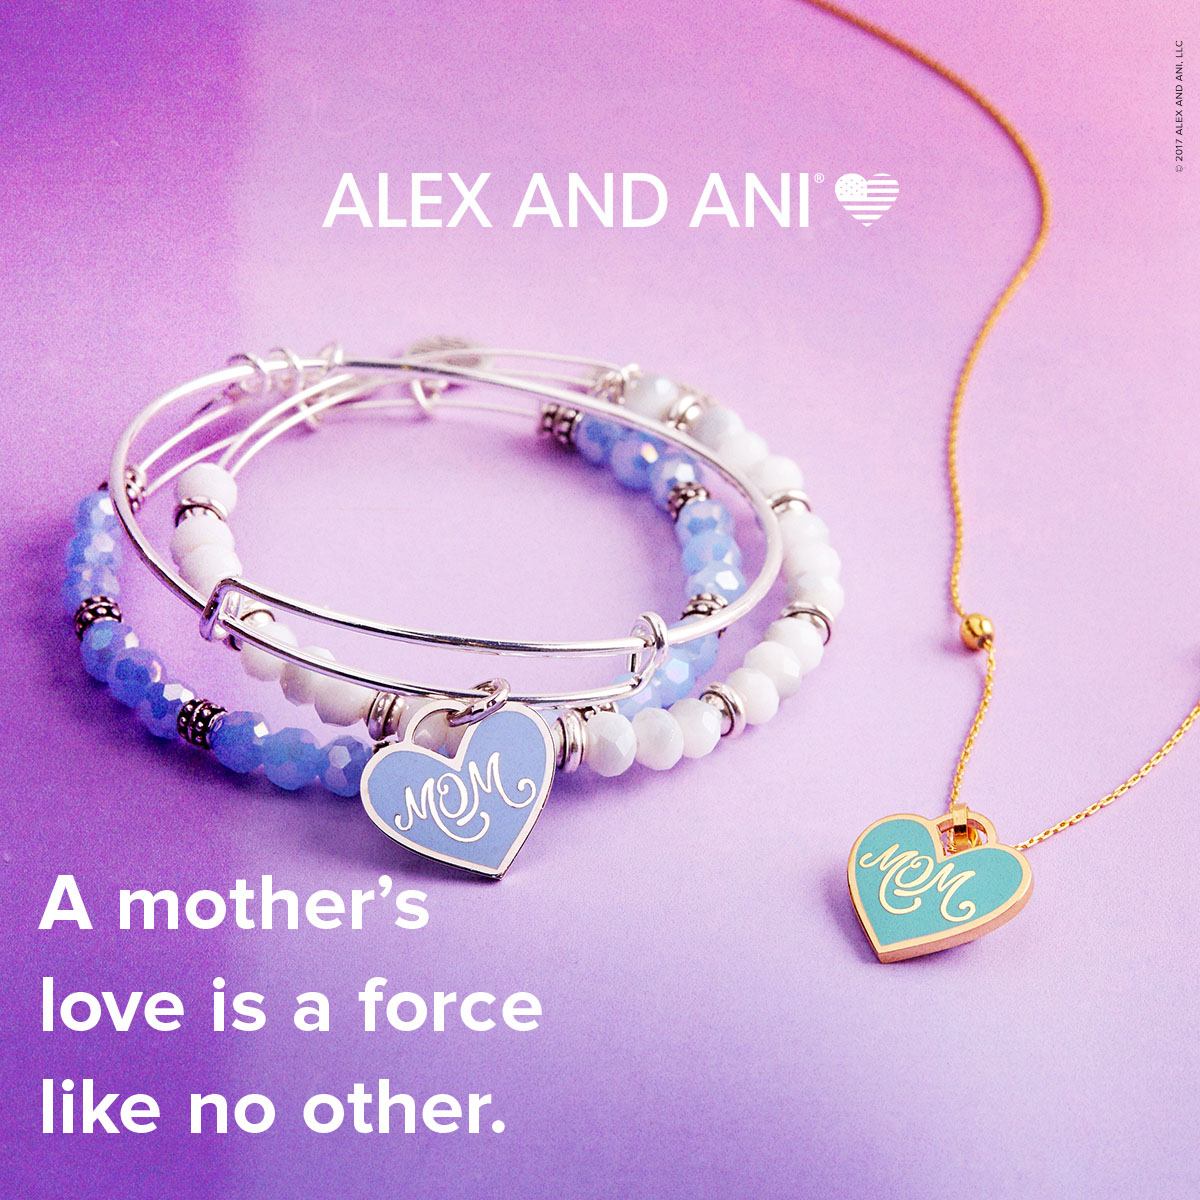 alex and ani mother's day